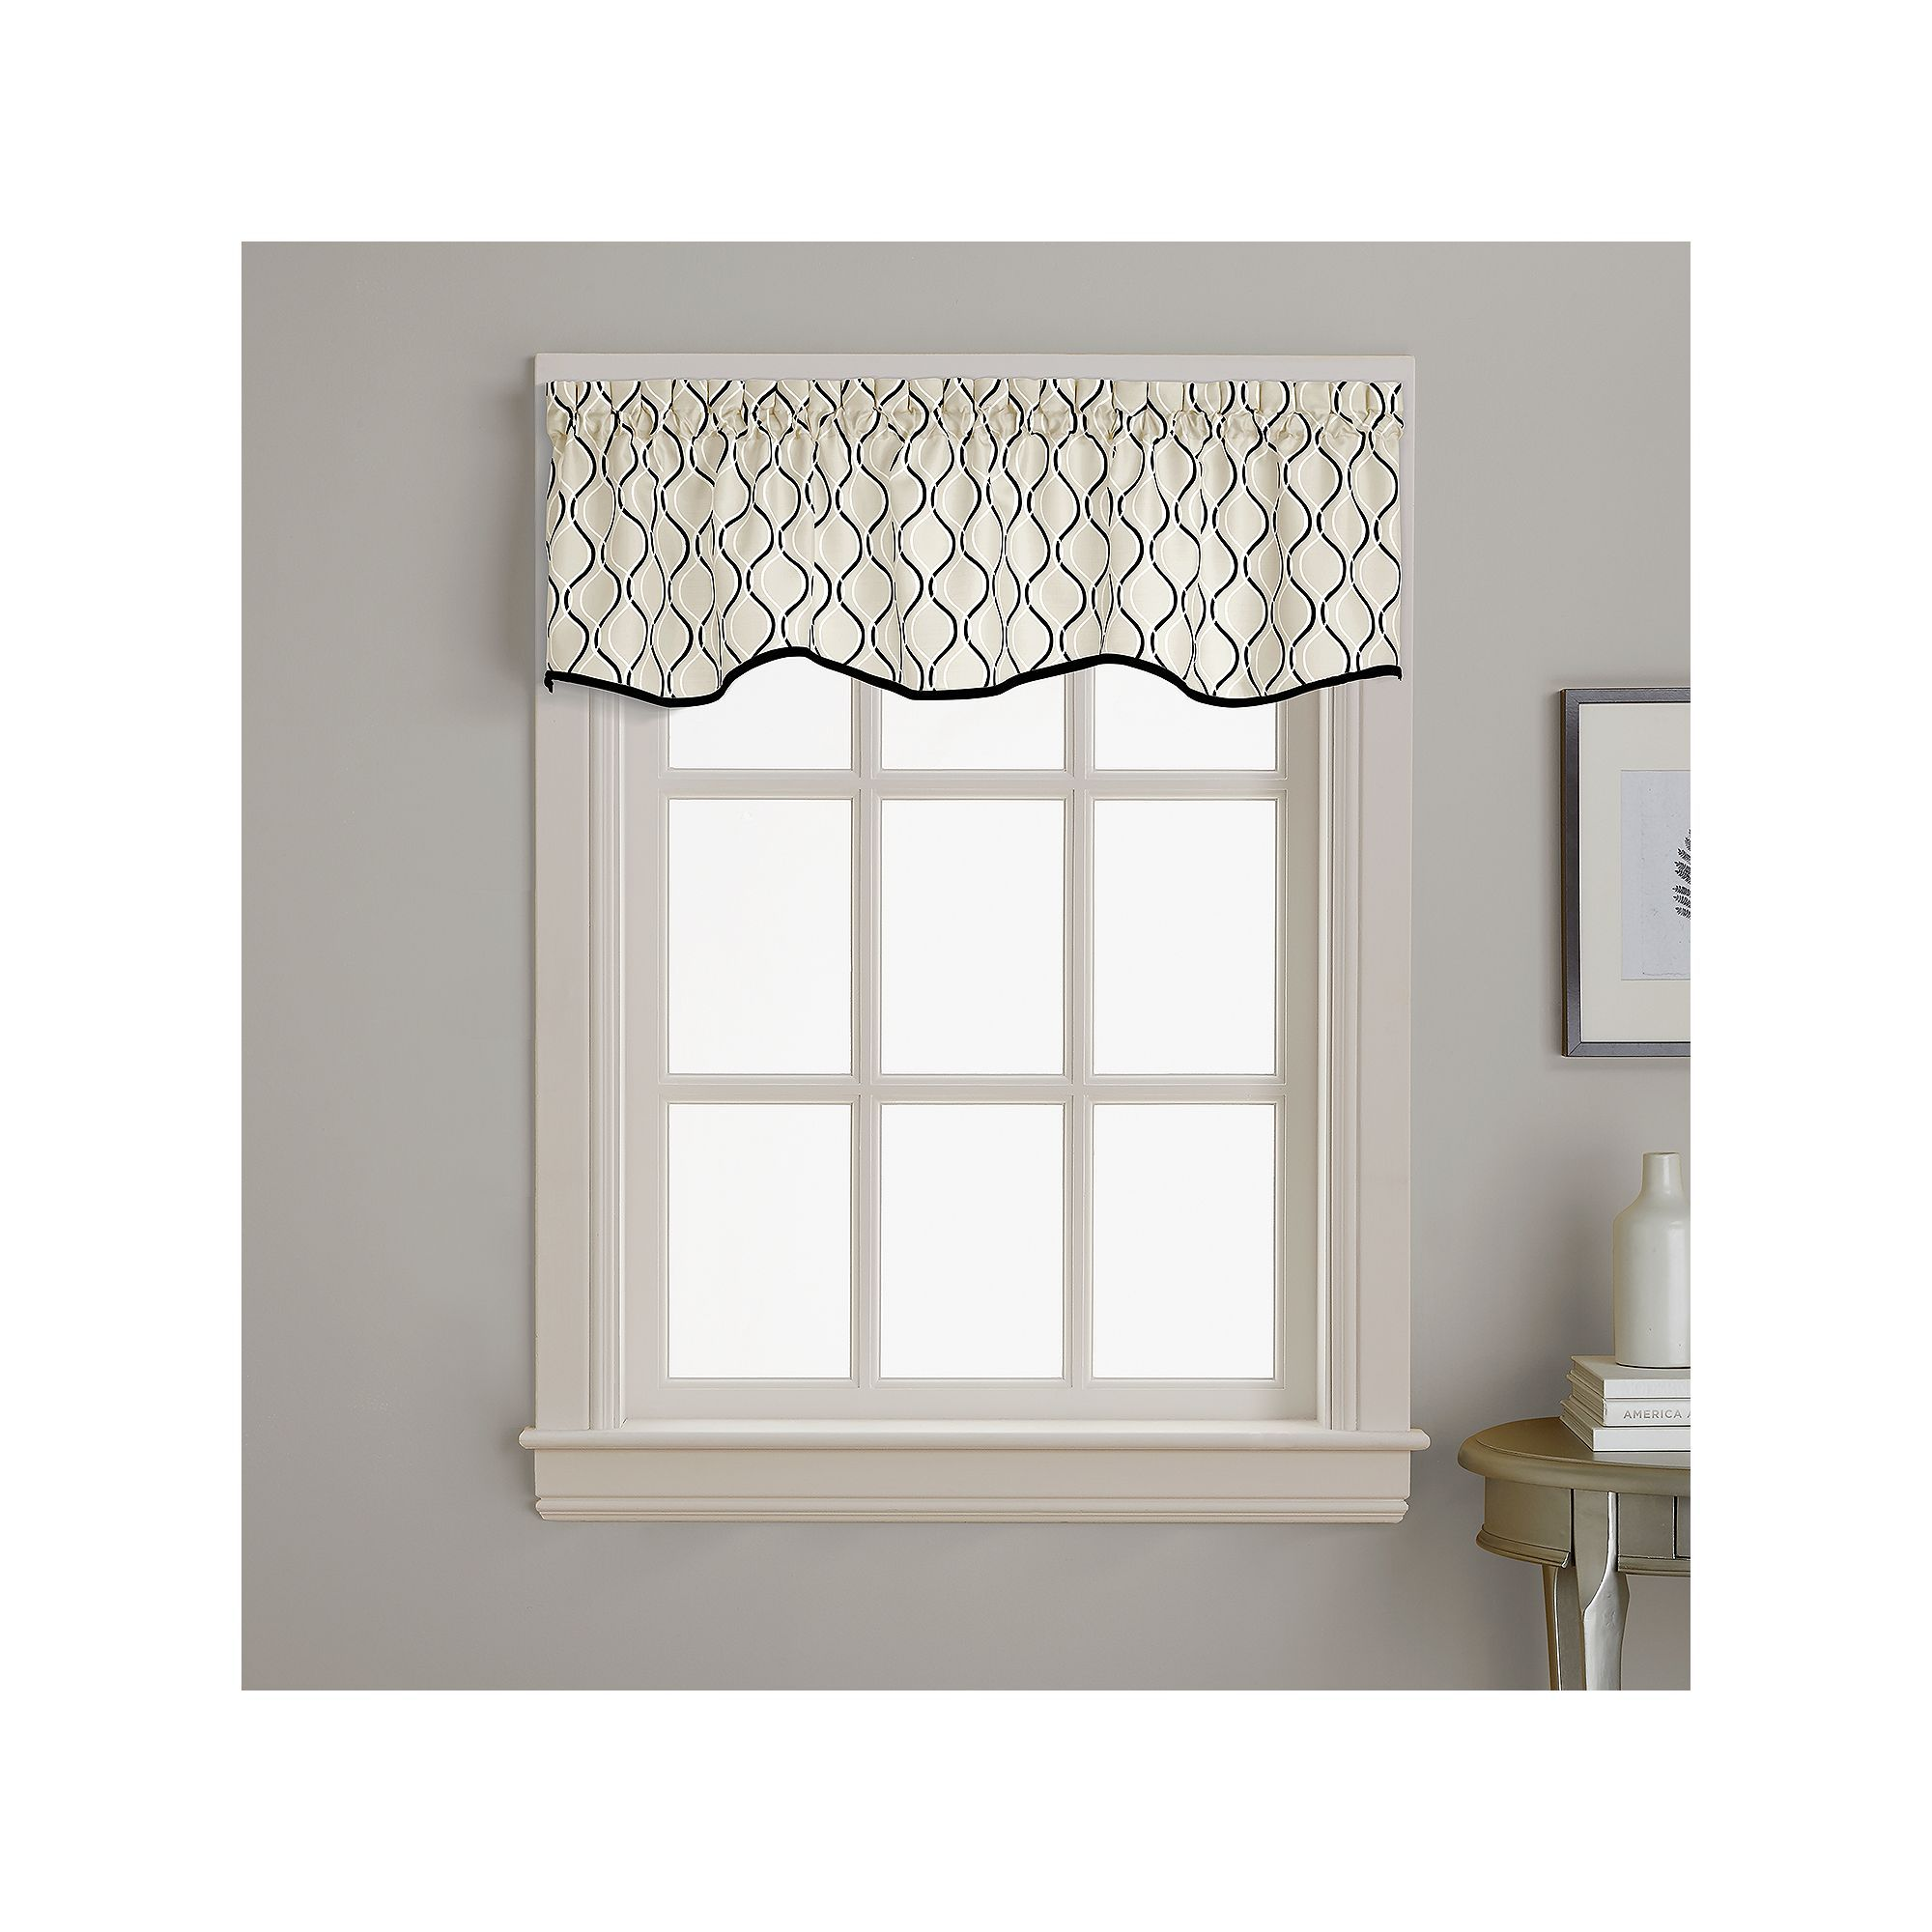 Morocco window valance valance morocco and products